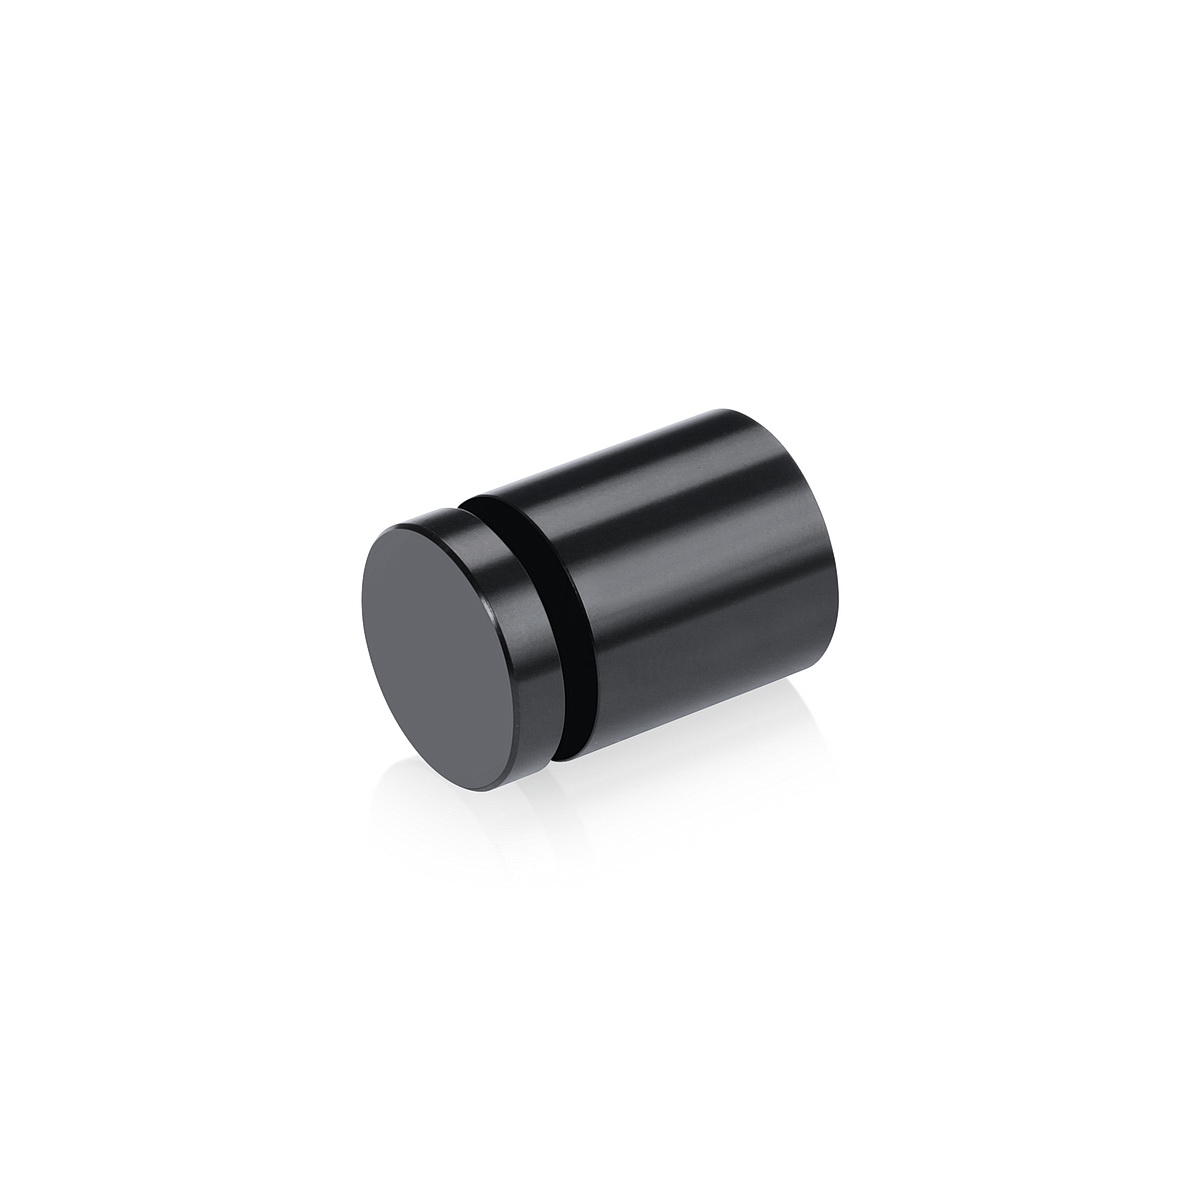 Affordable Aluminum Standoffs, Diameter: 3/4'', Standoff: 3/4'', Aluminum Black Finish